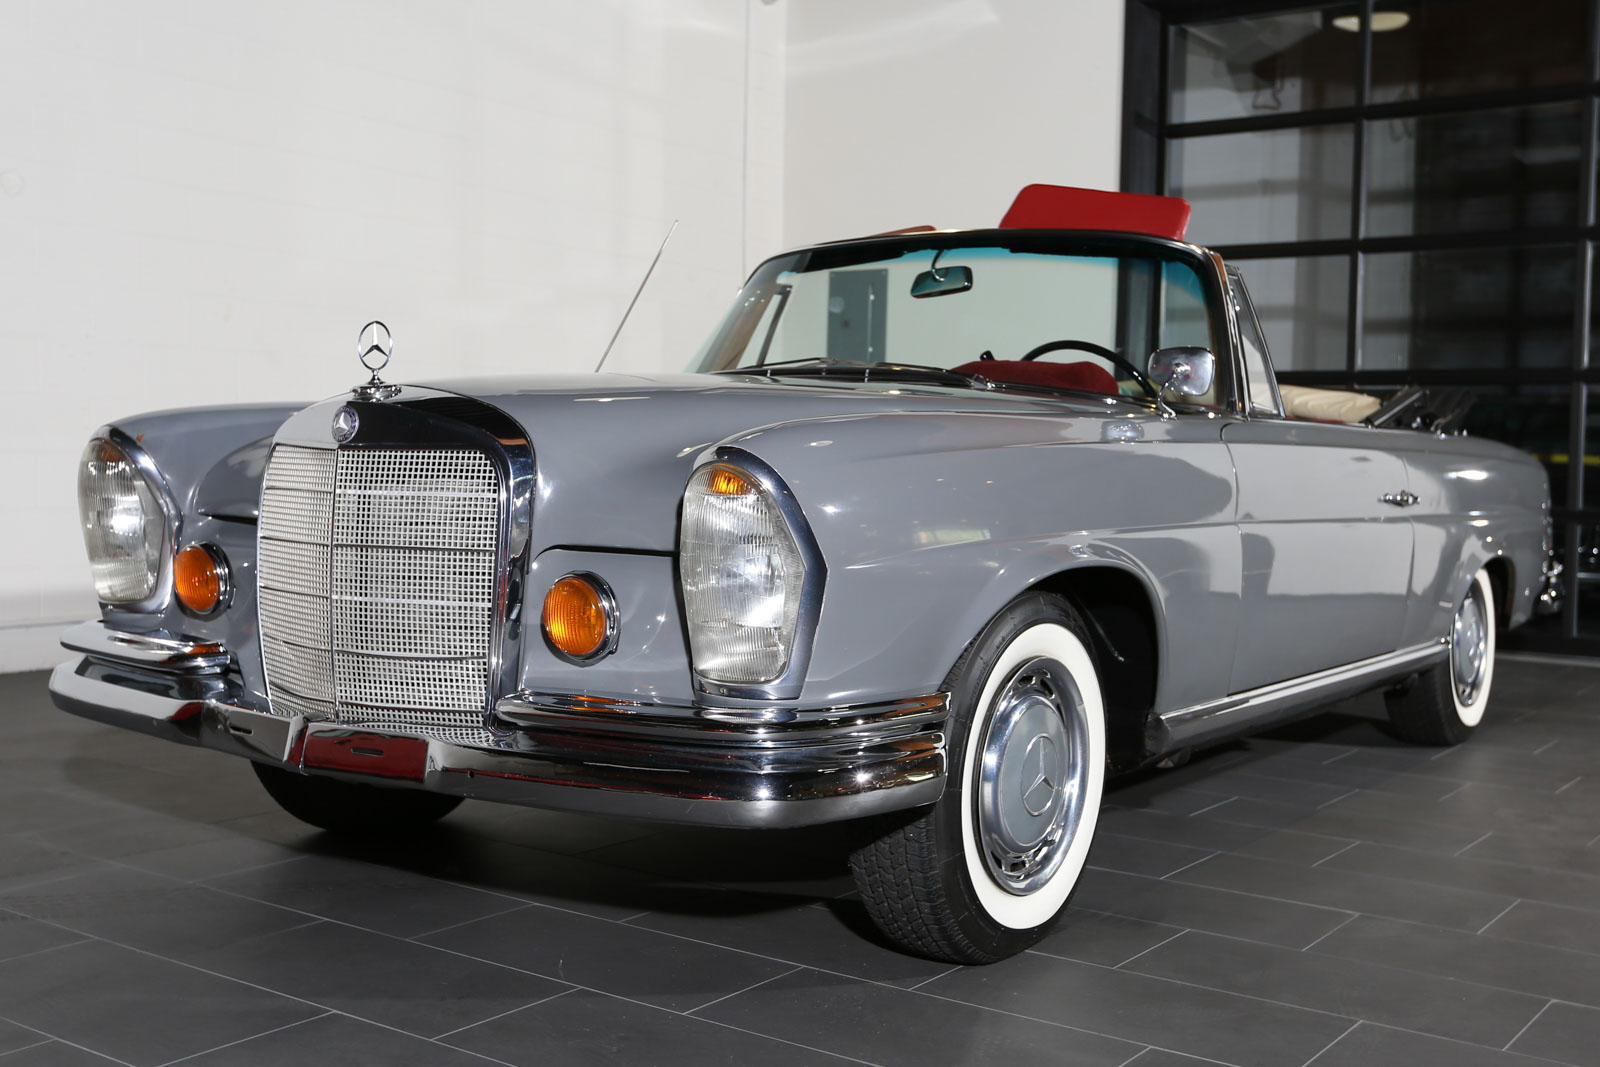 1963 mercedes benz 220se silver arrow cars ltd for 1963 mercedes benz 220s for sale